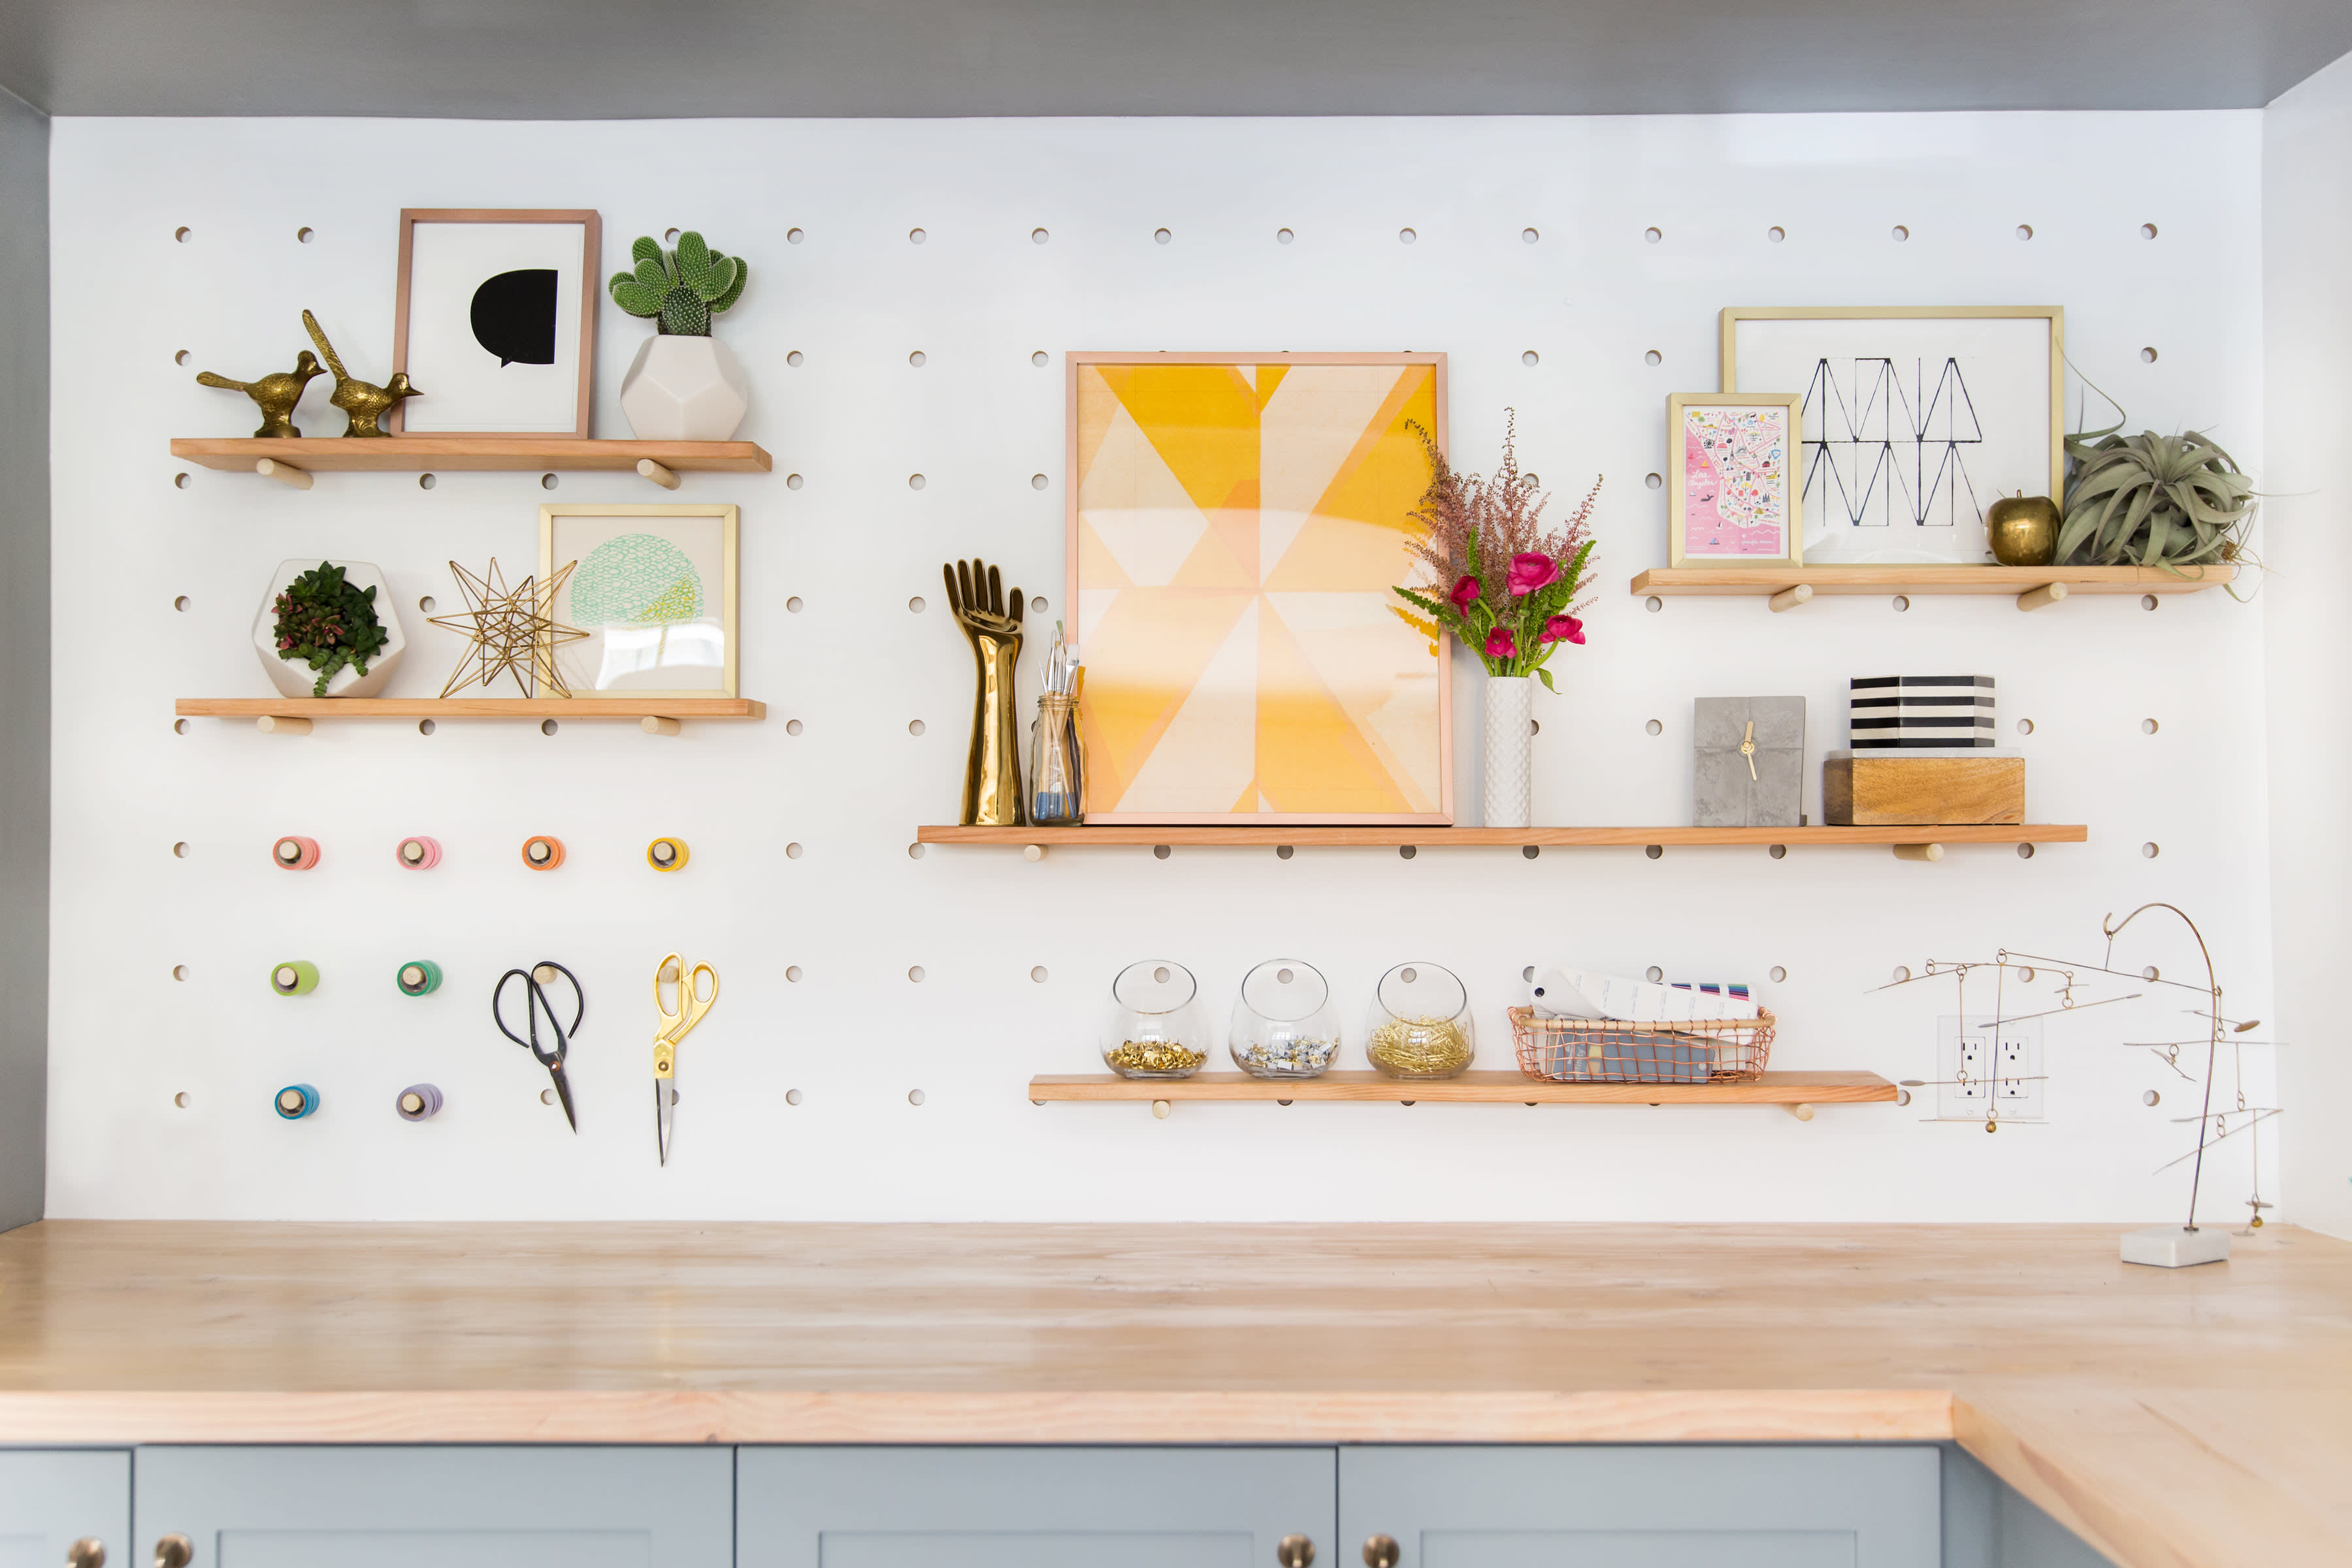 This Hgtv Star Completely Transformed Her Garage Into An Effervescent Home Design Studio Apartment Therapy